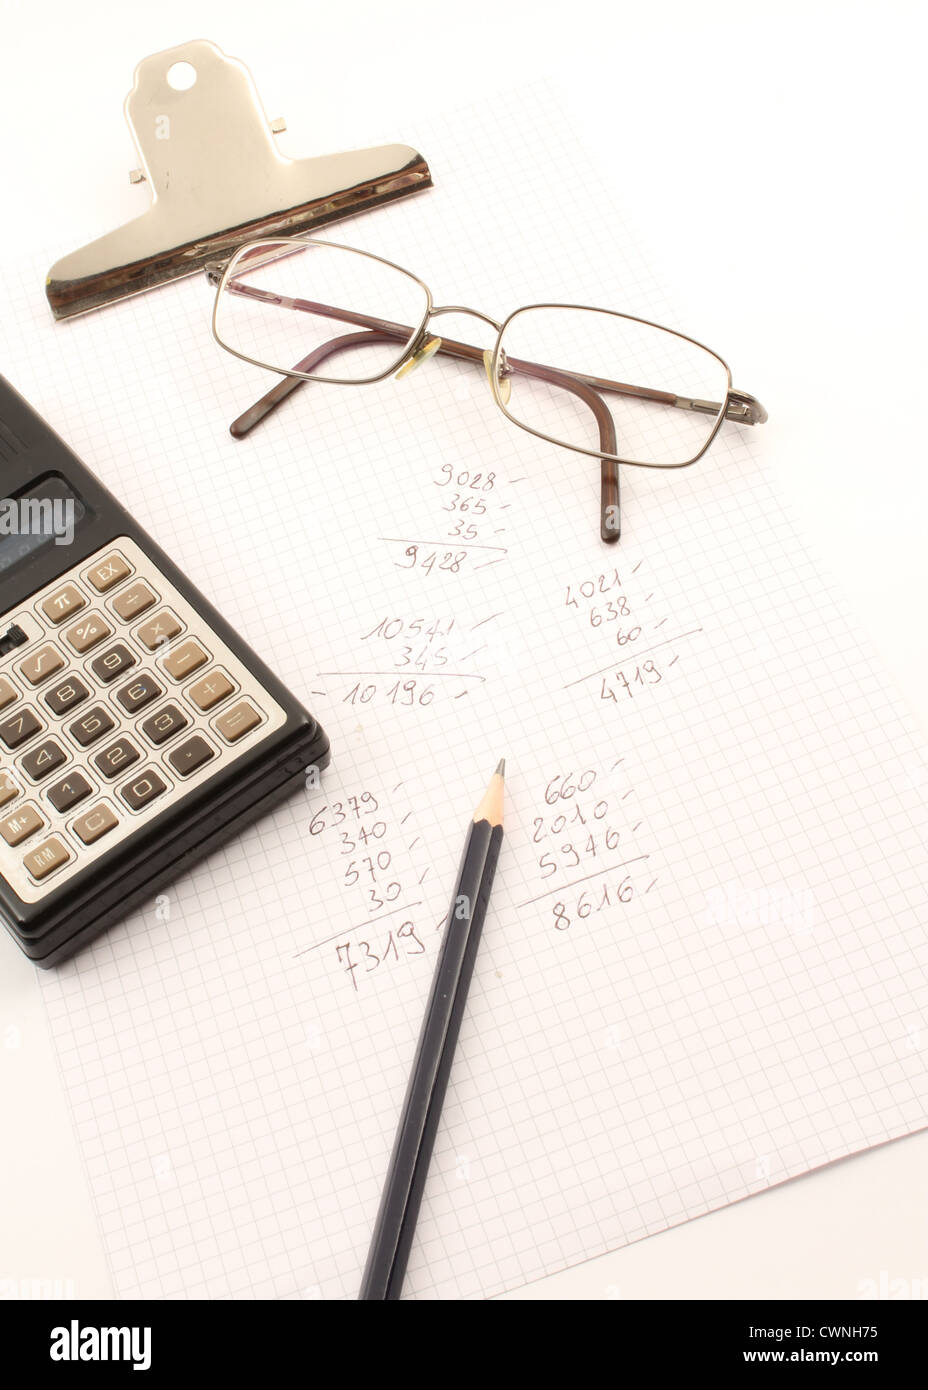 Written on a sheet of paper with a calculator and pen vintage. - Stock Image